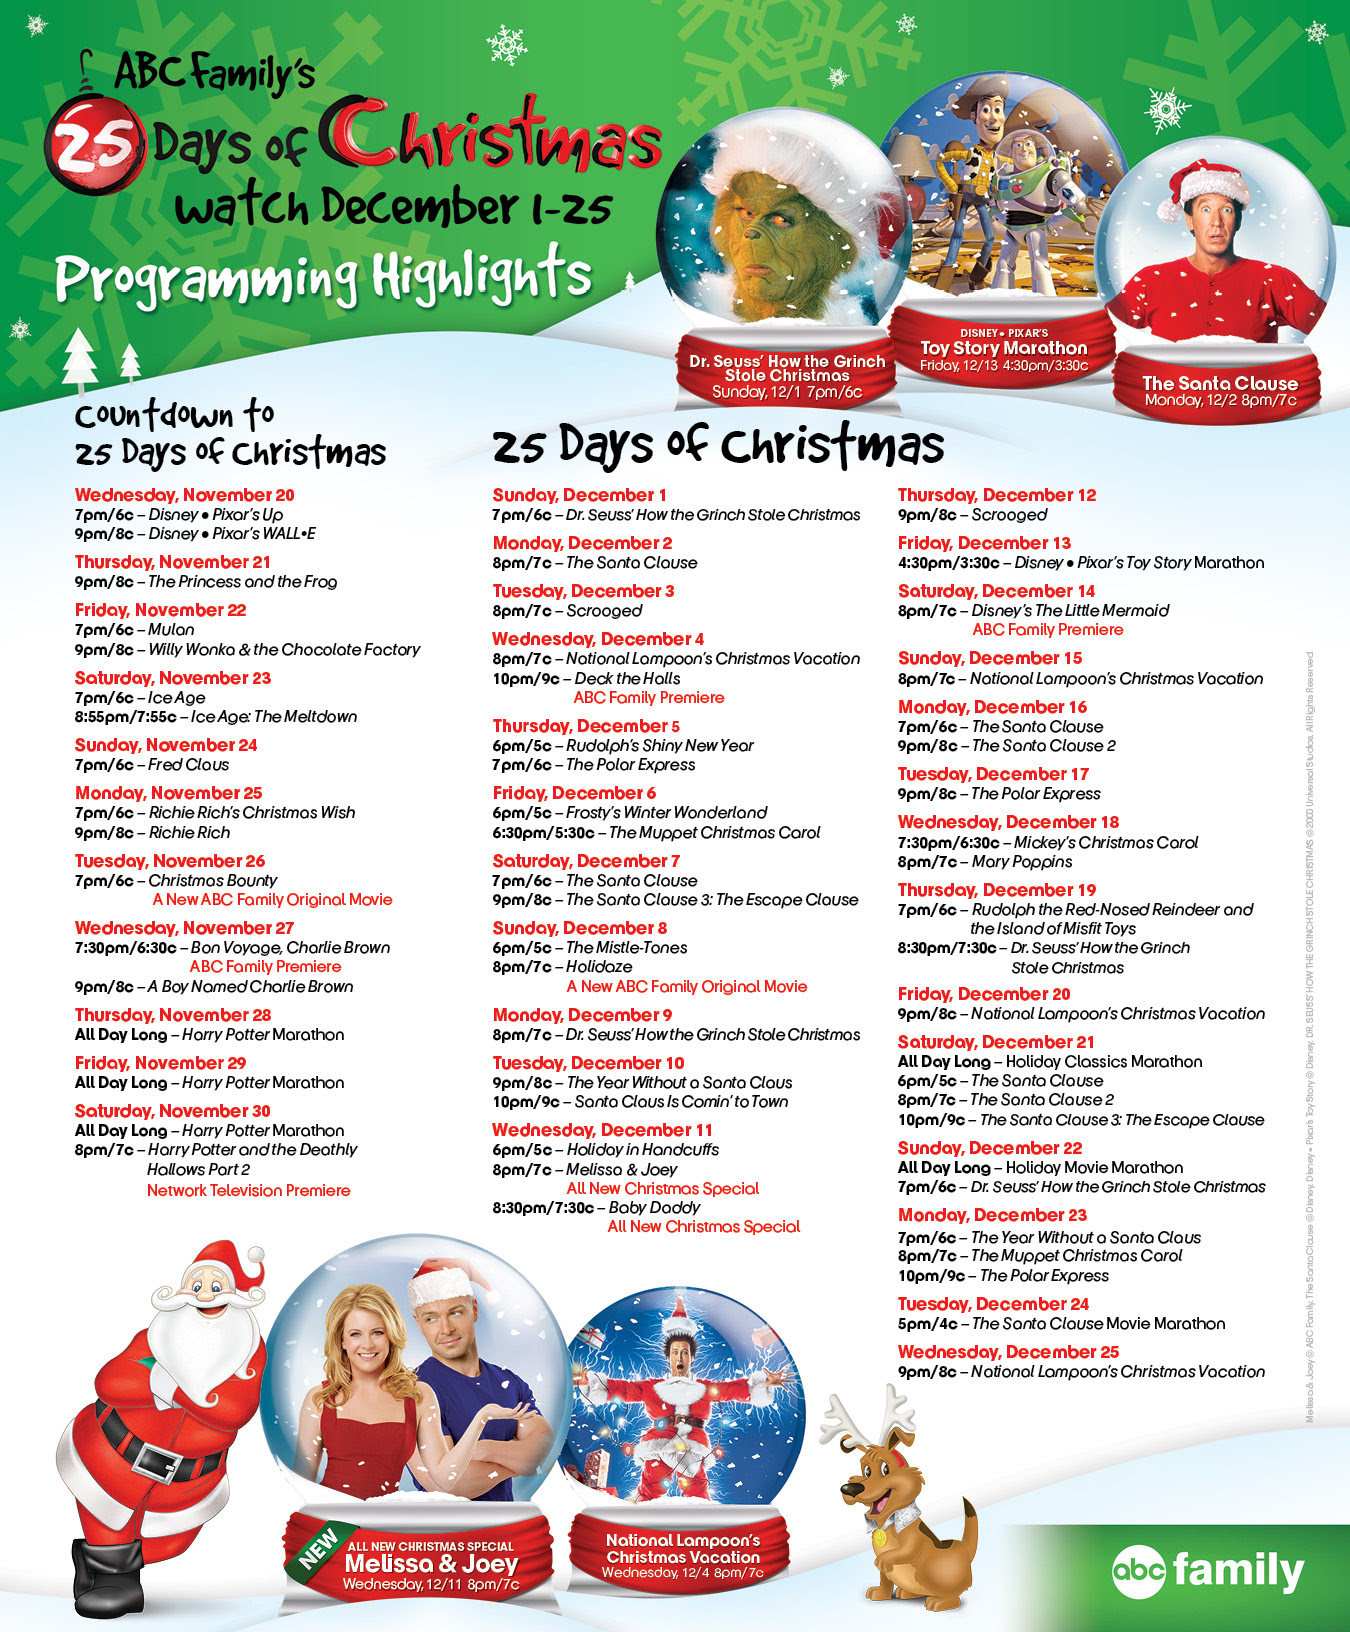 25 days of Christmas schedule on 6ABC